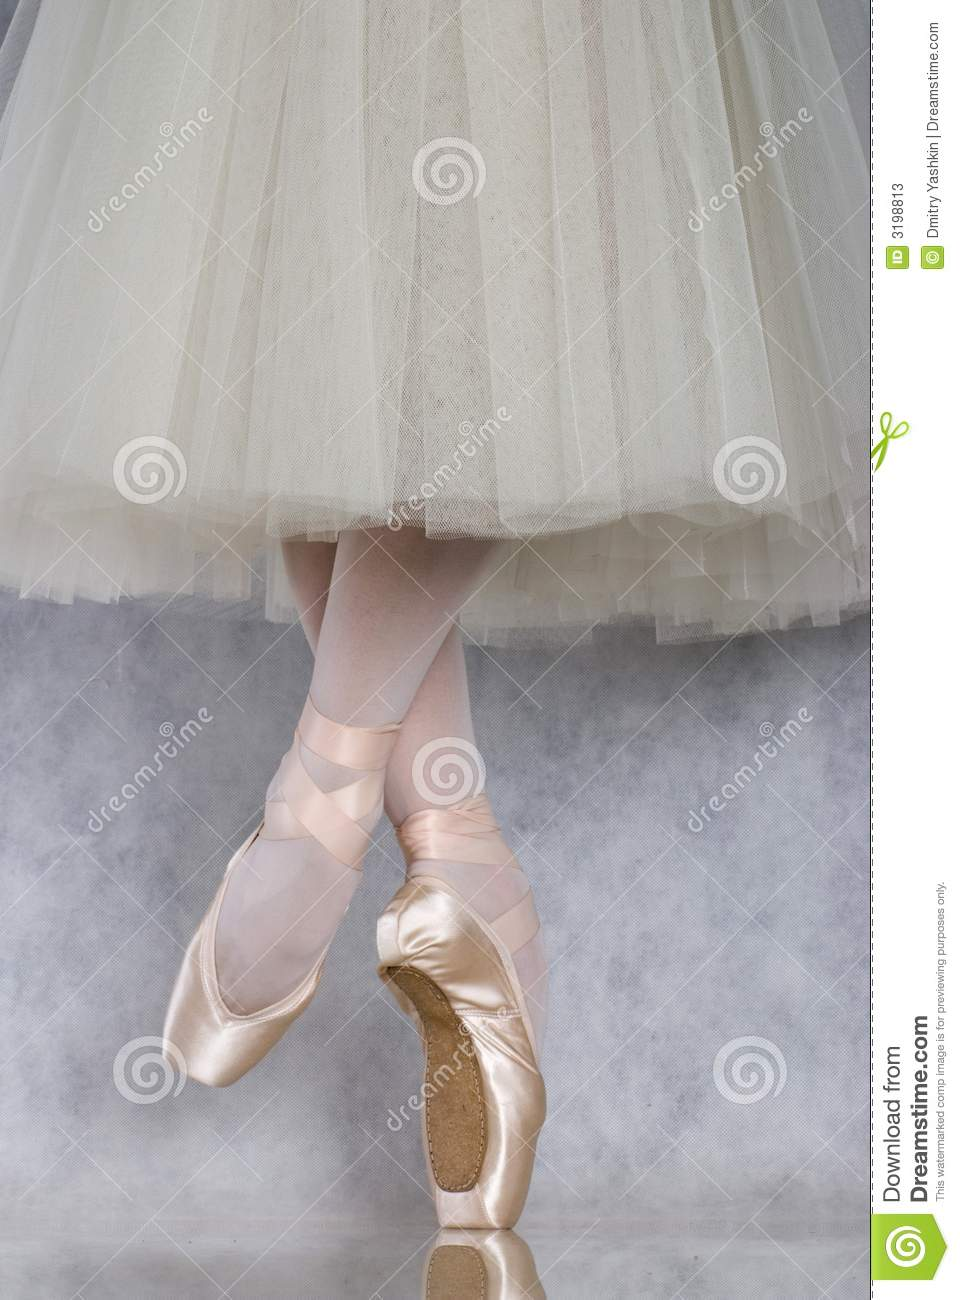 Dancer in ballet pointe